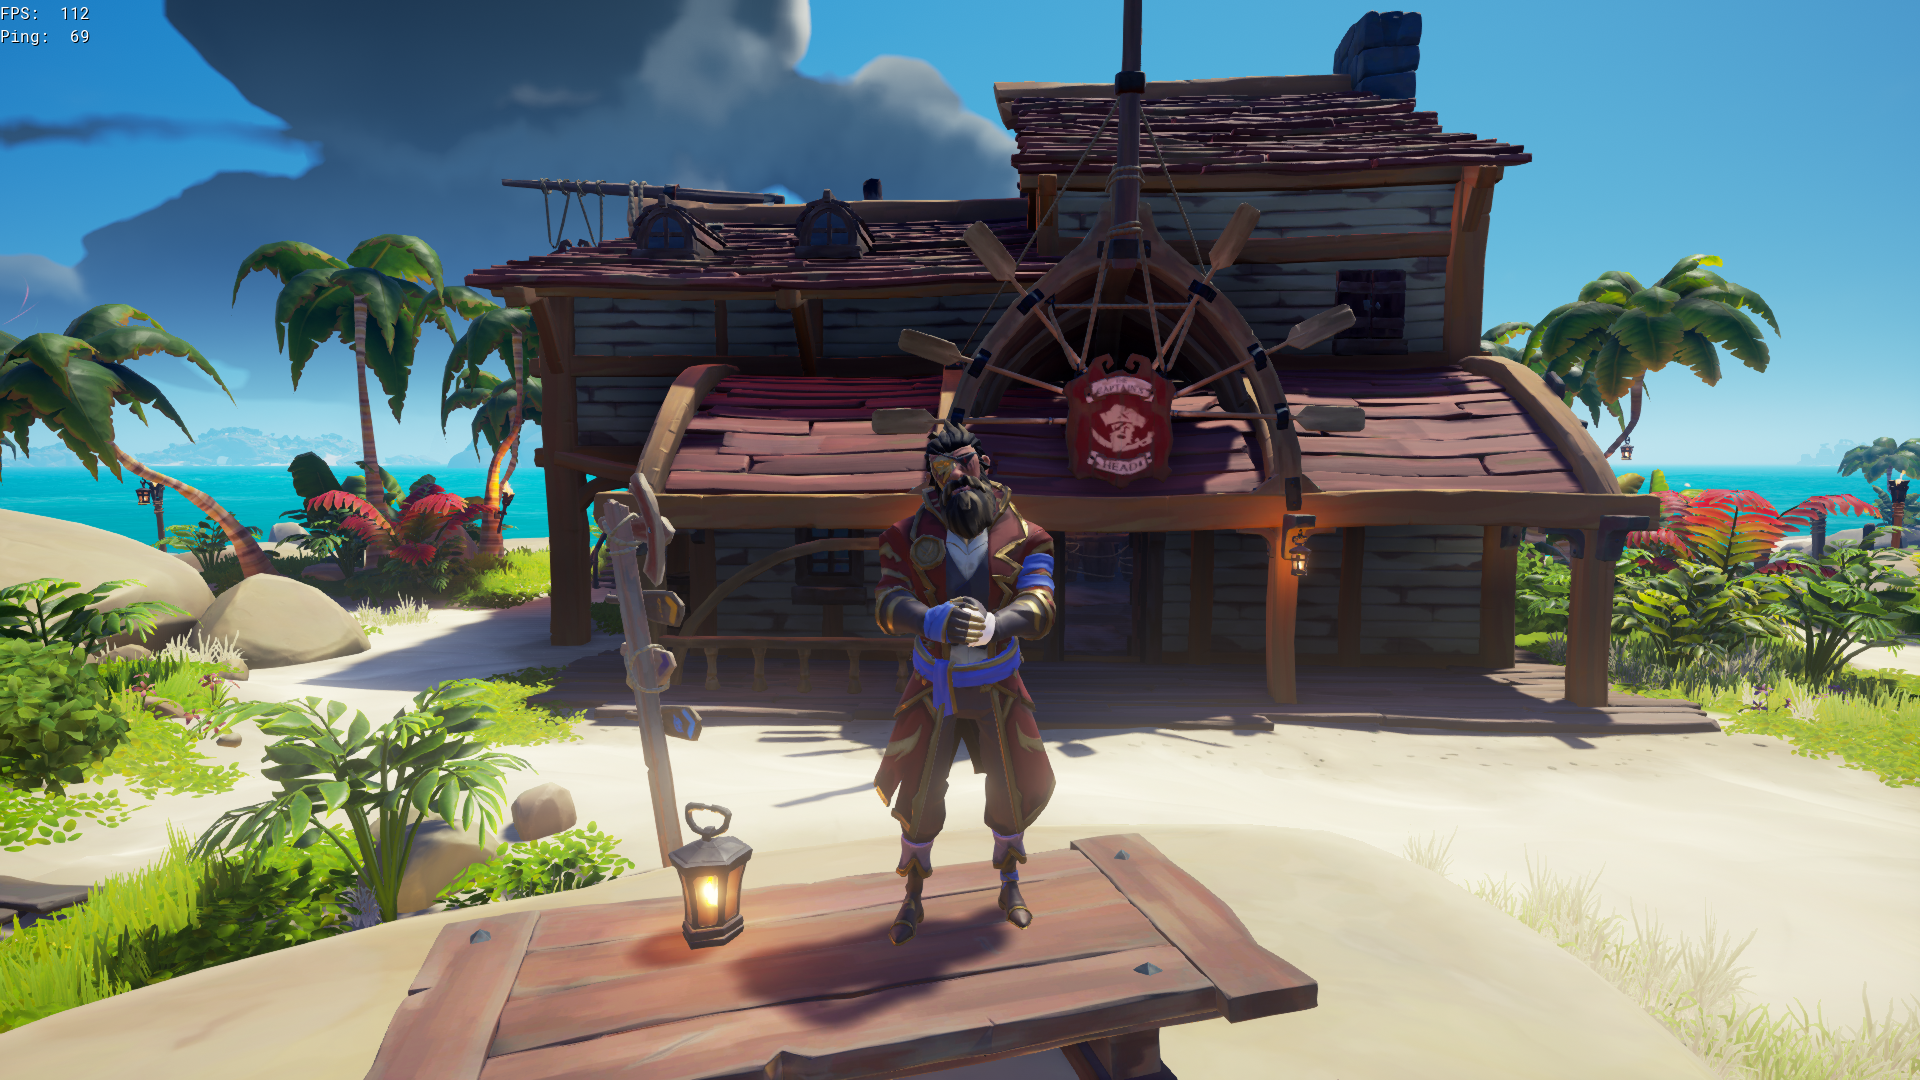 Sea of Thieves Screenshot 2020.06.07 - 23.48.59.87.png